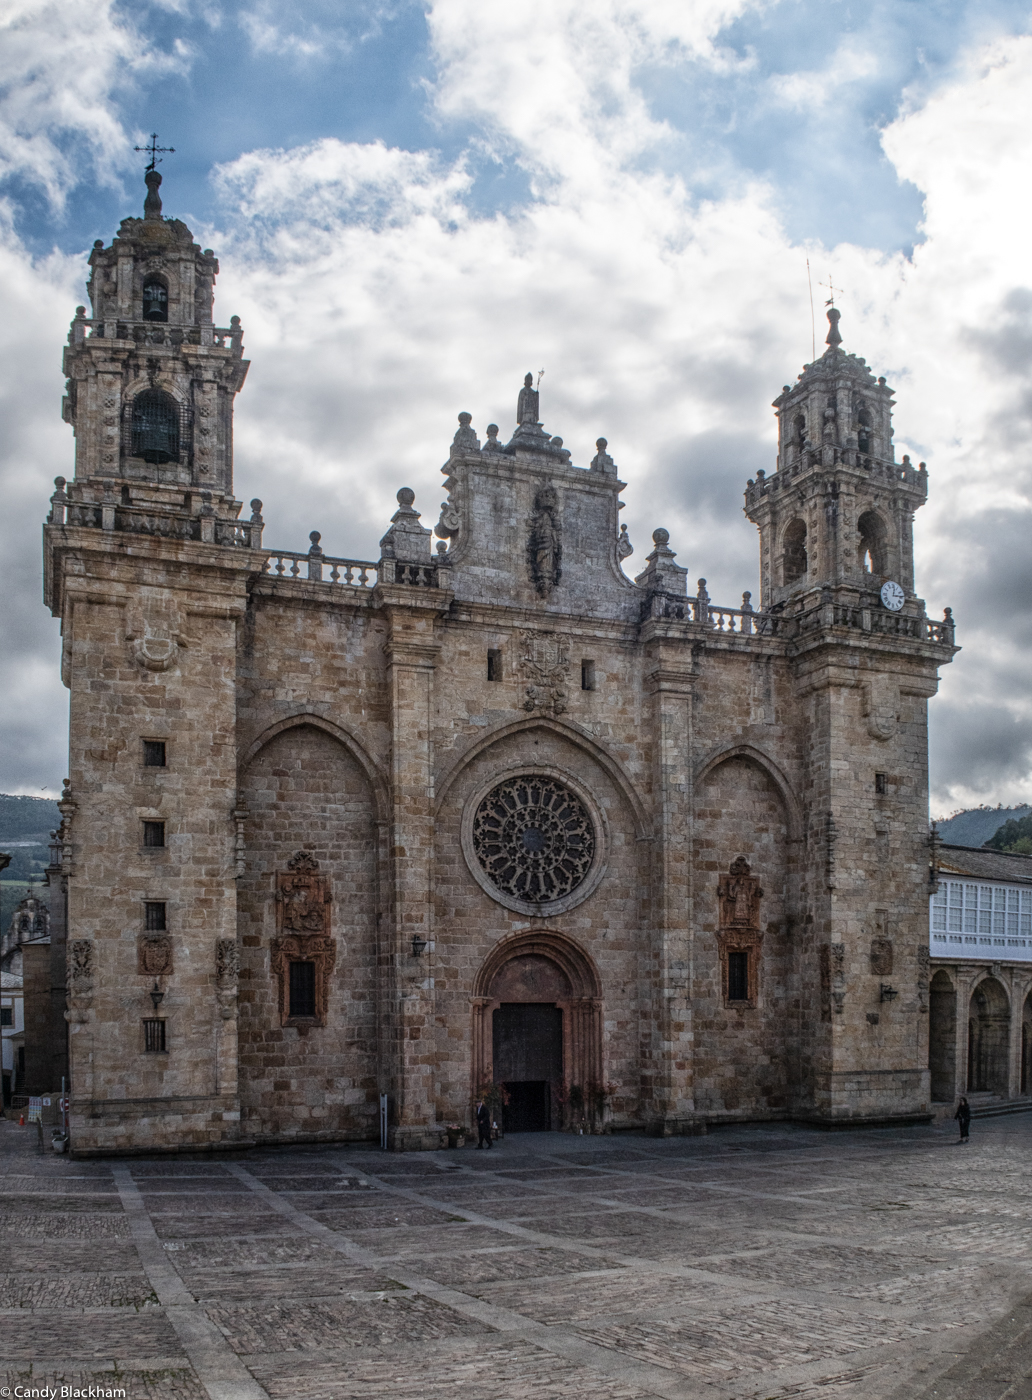 The Cathedral in Mondonedo on the road from Lugo to Ribadeo